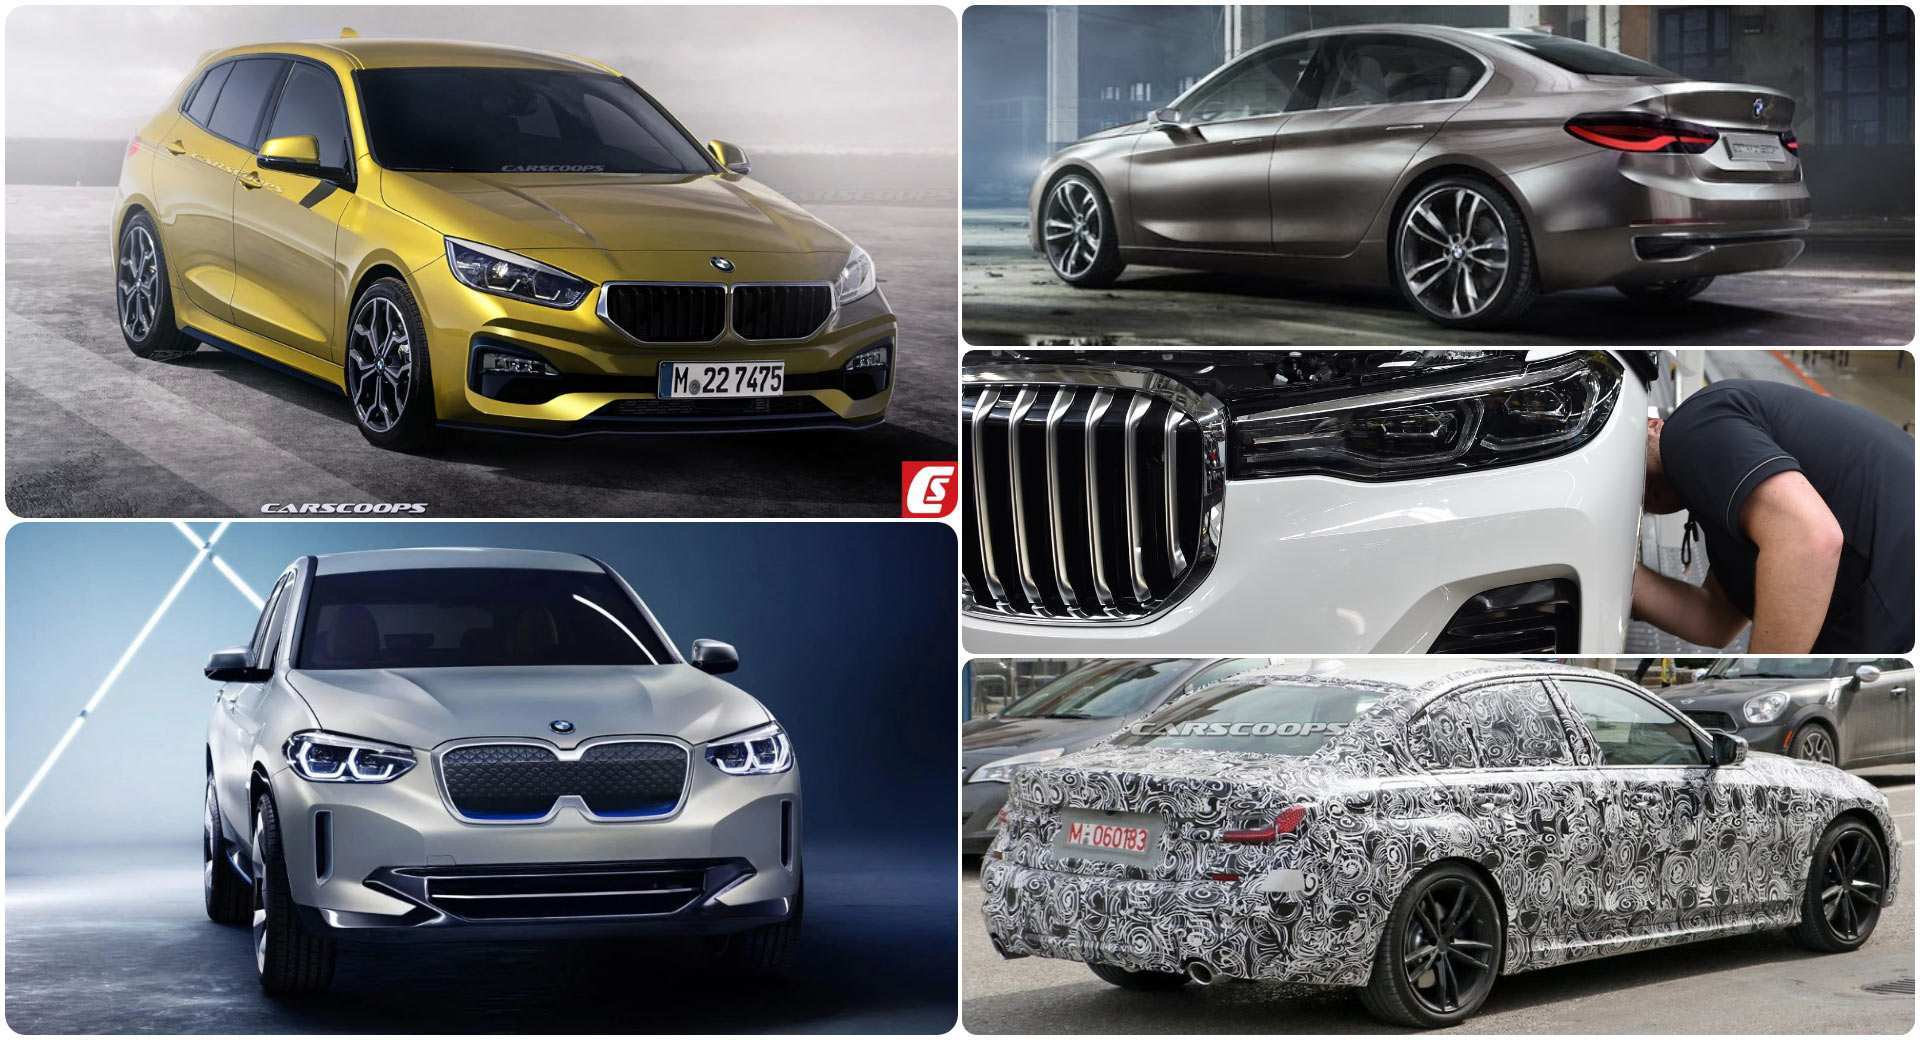 37 All New BMW 5 Series Update 2020 Spesification by BMW 5 Series Update 2020